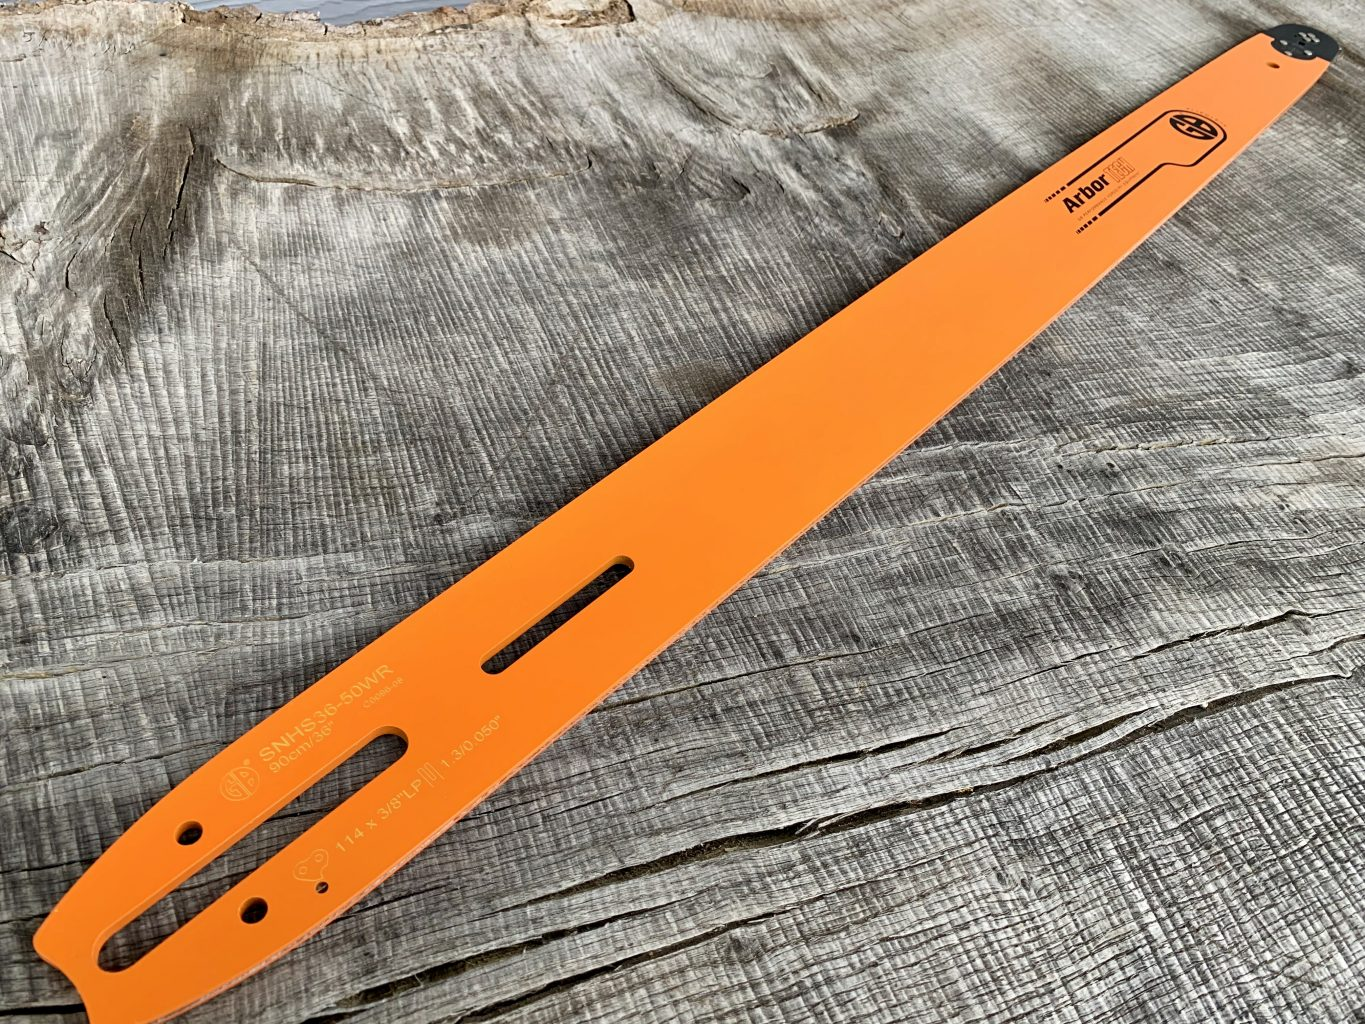 "HSS54-63RQ 54""[136cm] GB Slotted Extra Long 4 Foot Bar for Stihl 050, 051, 070, 075, 076, 08, 090, 088, MS880 .404 .063 148 drive links"